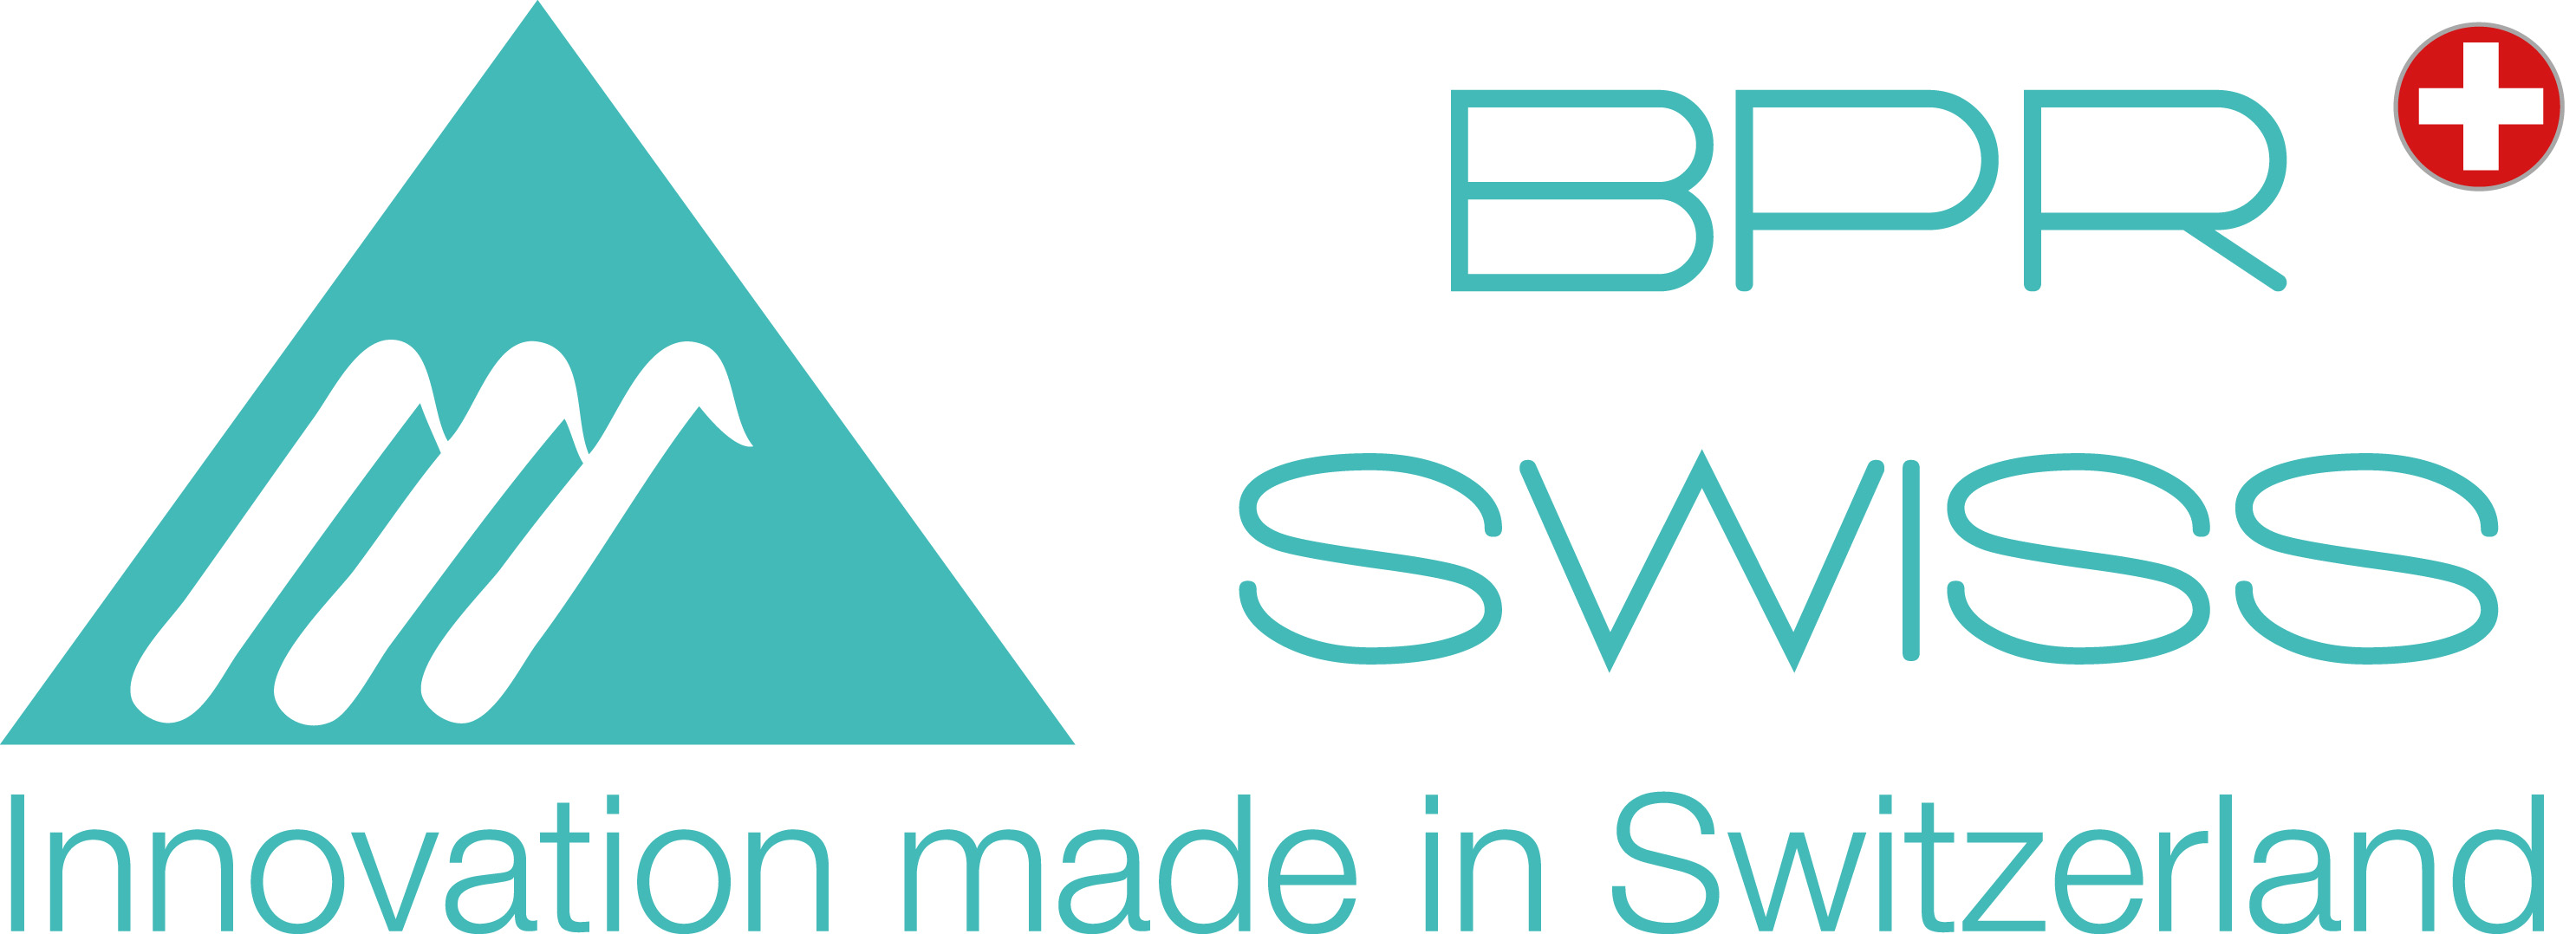 MAIN COMPANY LOGO 2014 innovation made in switzerland side green swiss cross